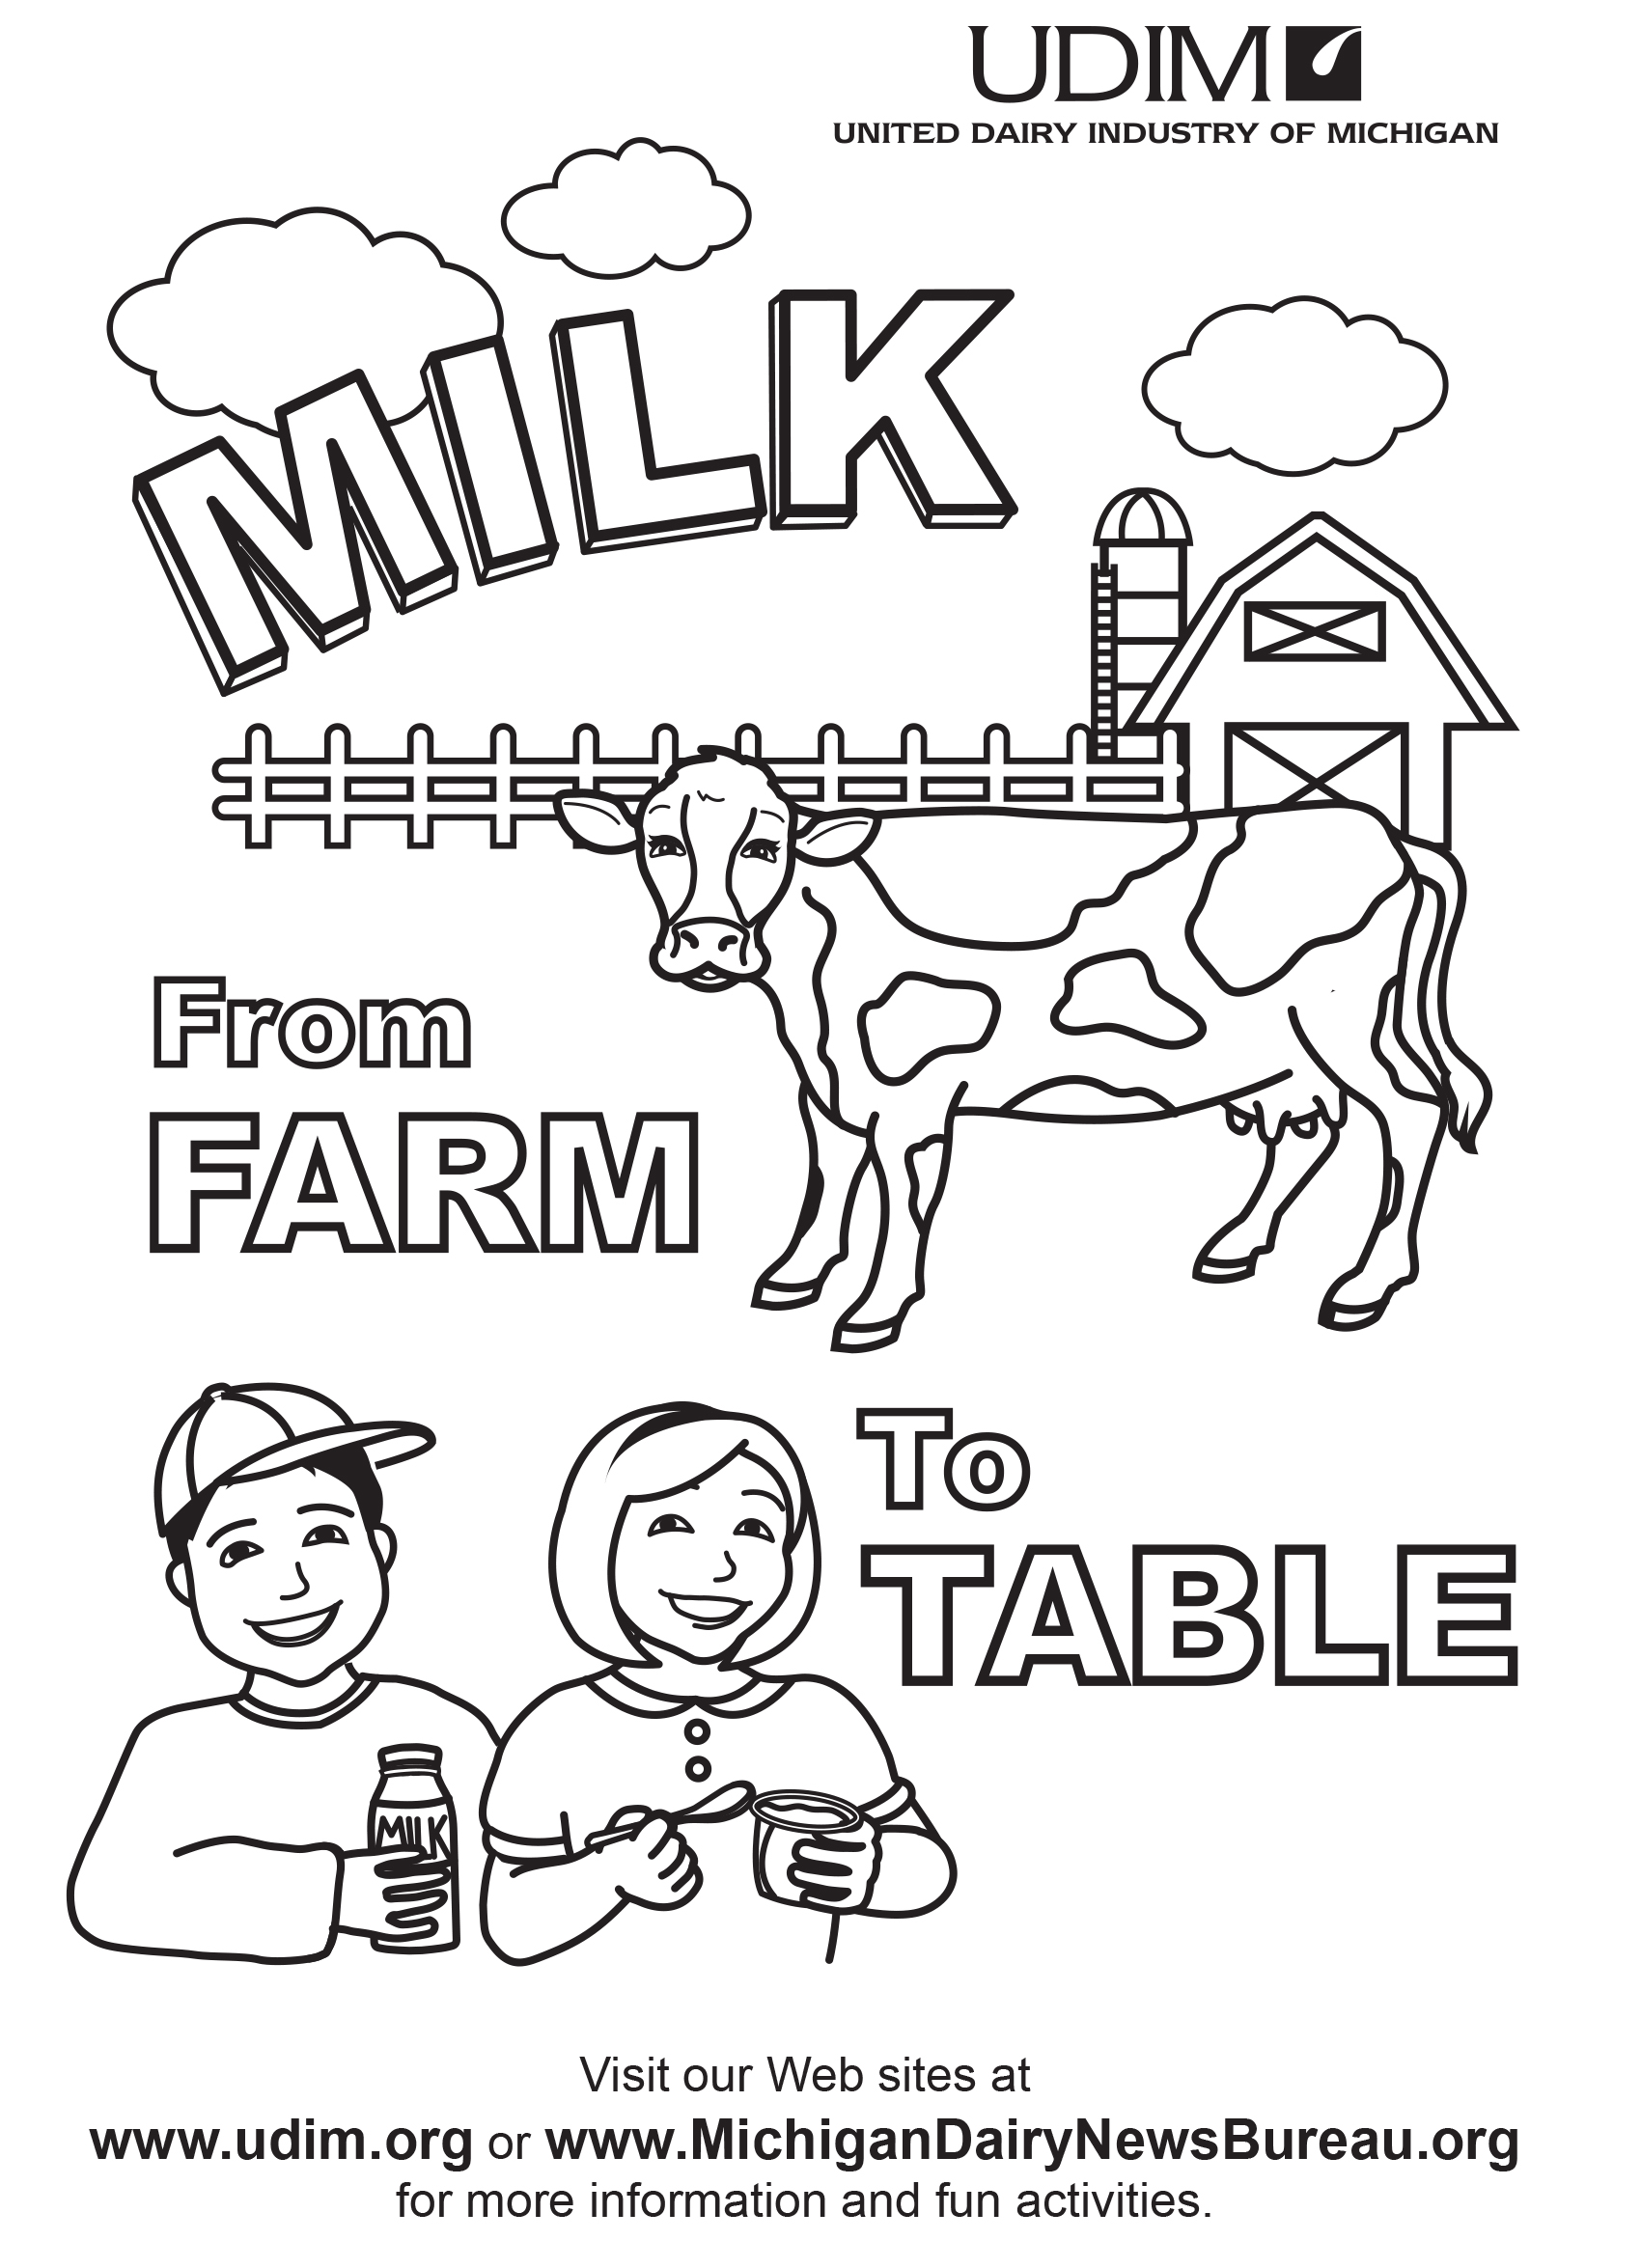 Dairy group coloring pages download and print for free